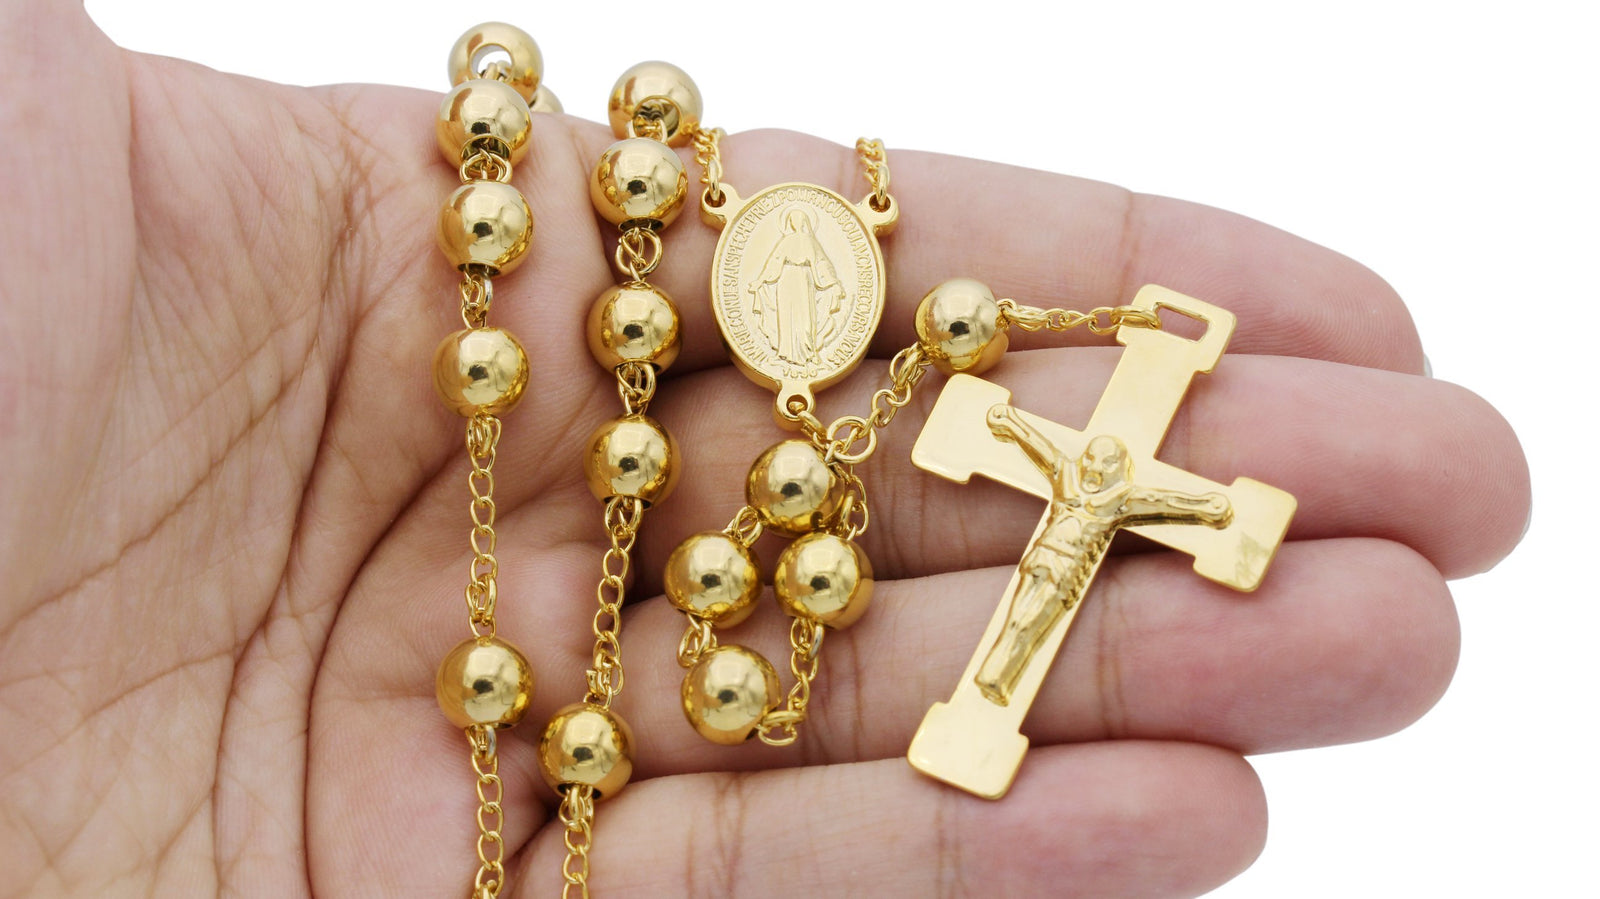 Traditional Rosary Necklace Five Decade Stainless Steel Catholic Prayer Beads (Gold) 8mm